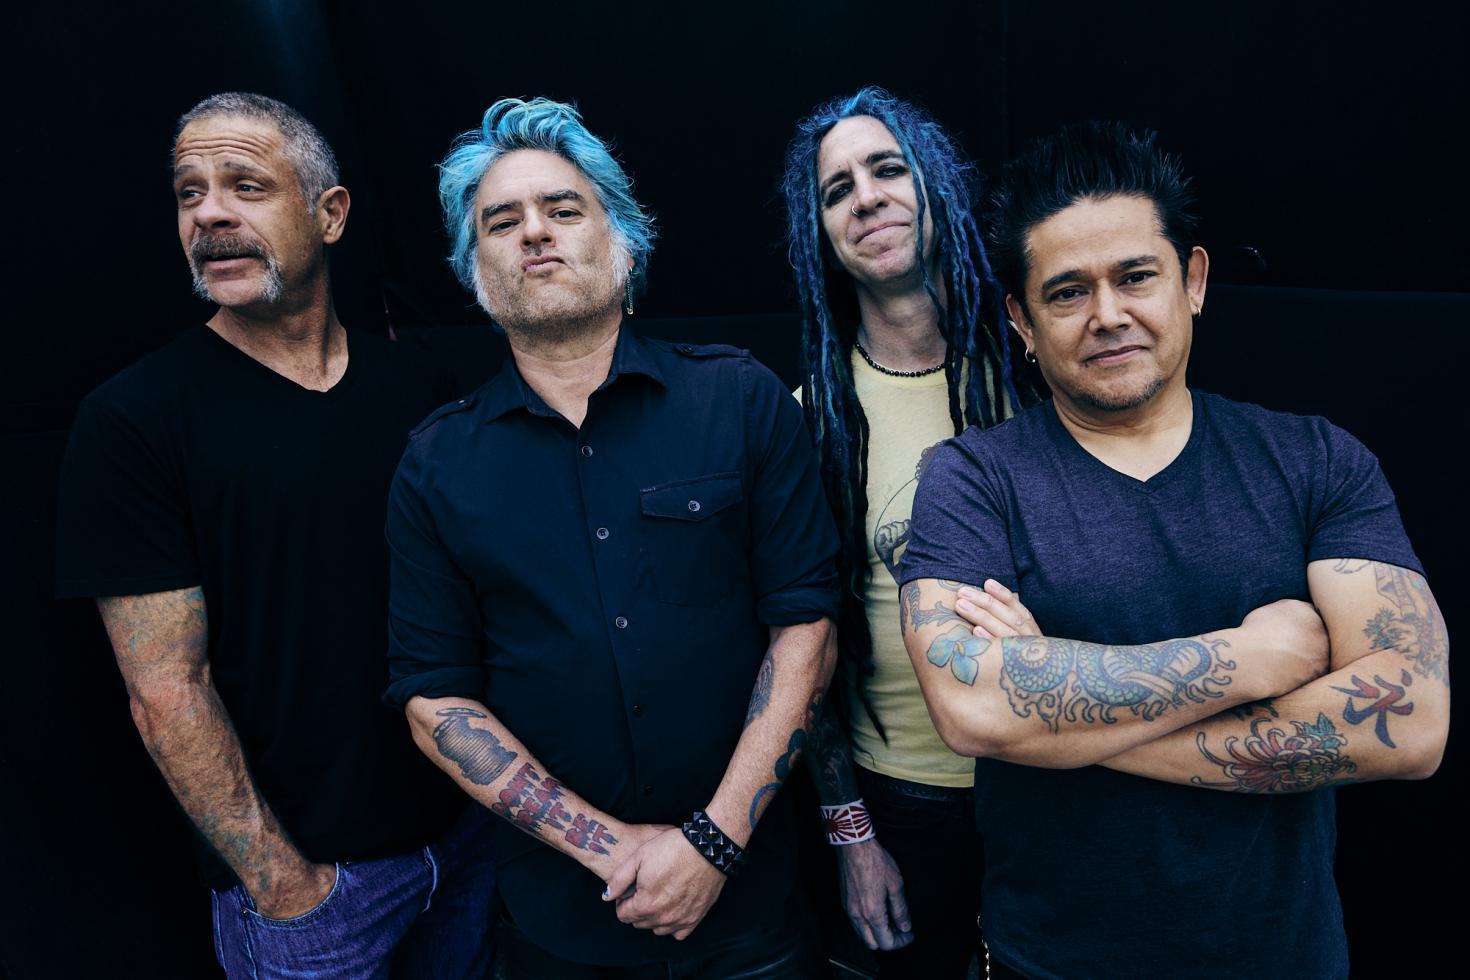 NOFX share new music video for 'The Big Drag'